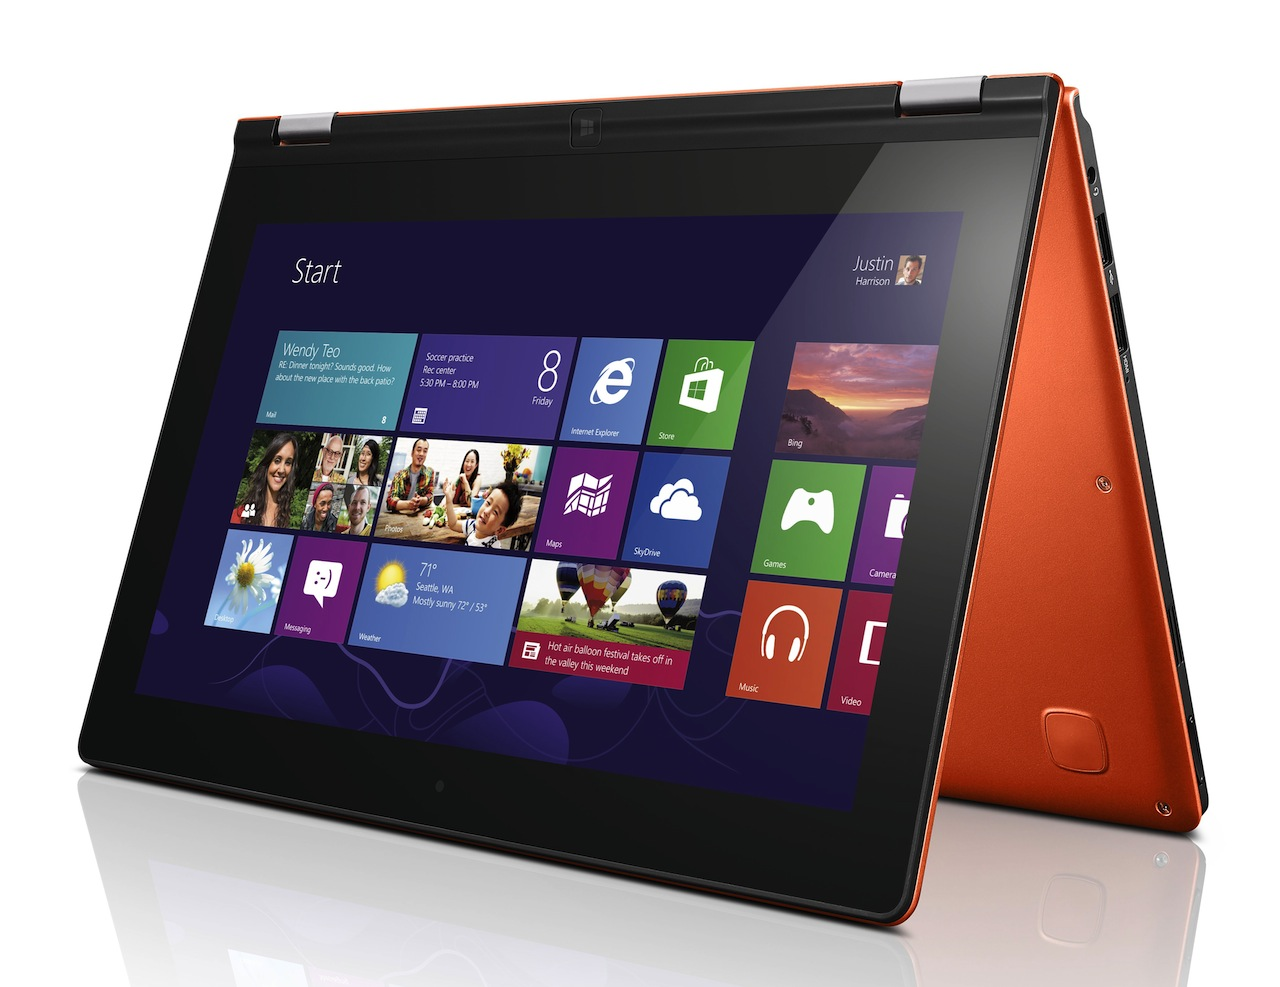 Lenovo ideapad yoga 11 touchscreen arm book